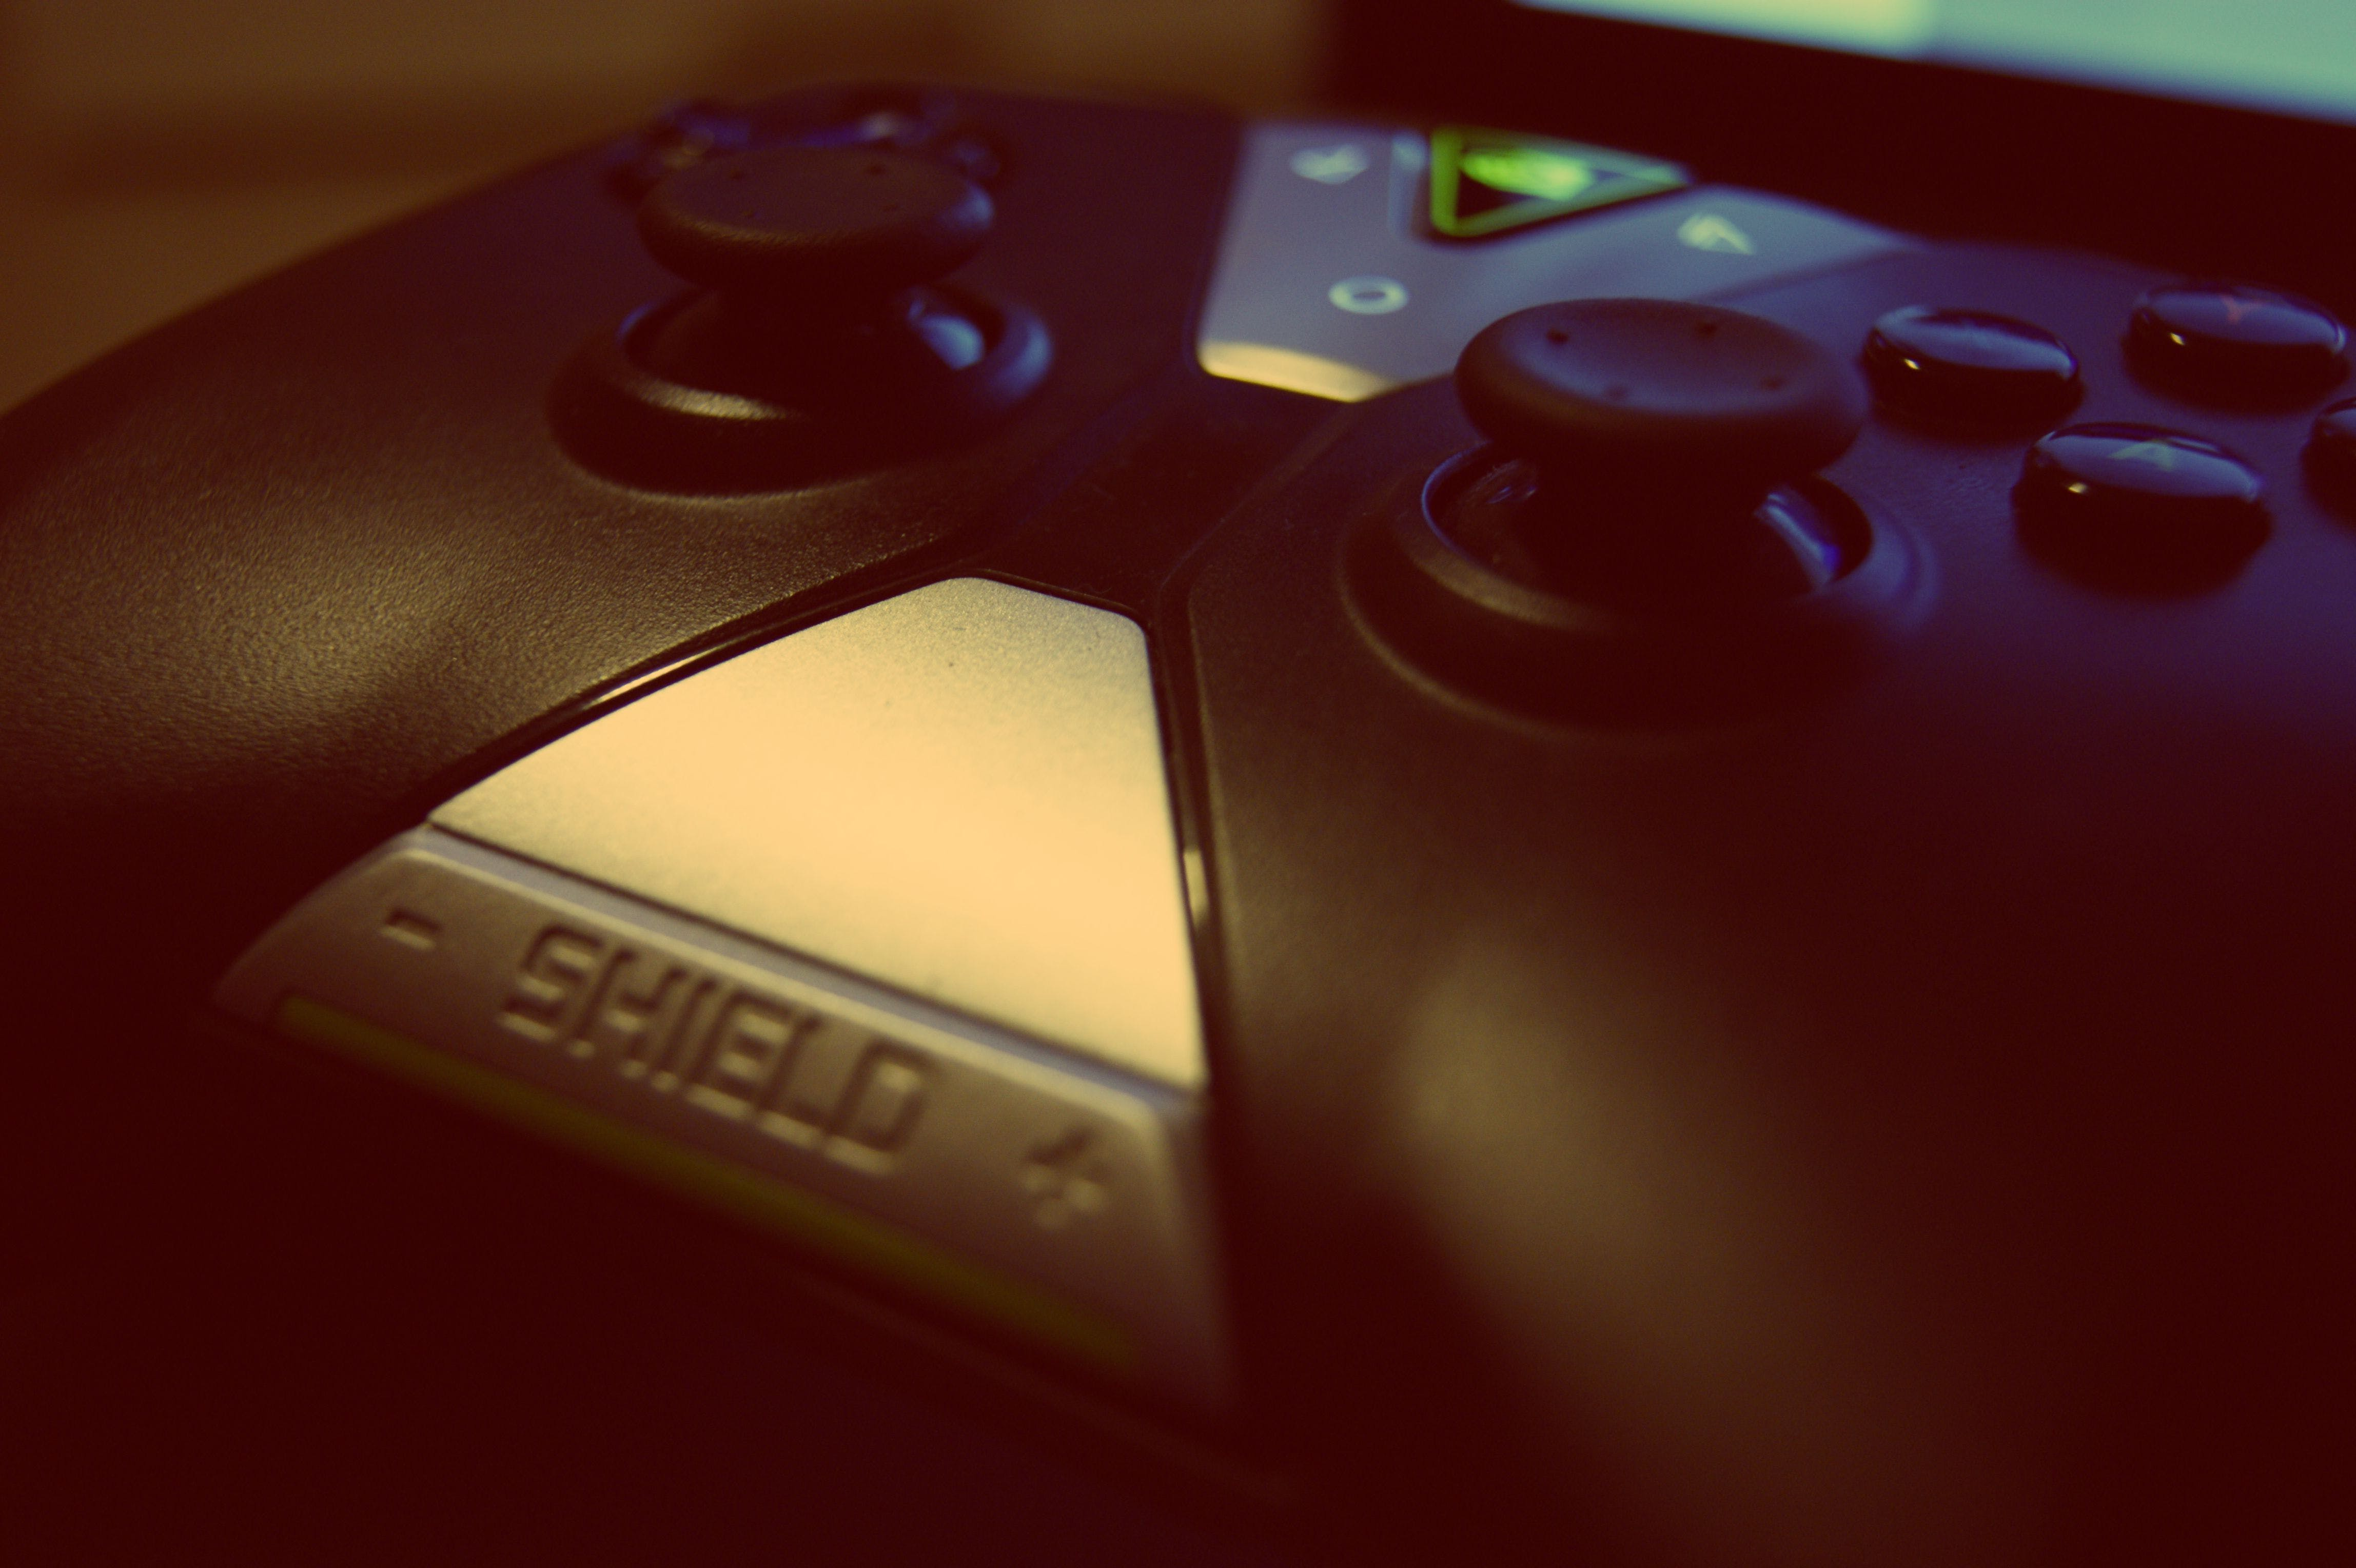 Black Shield Game Controller Close-up Photography